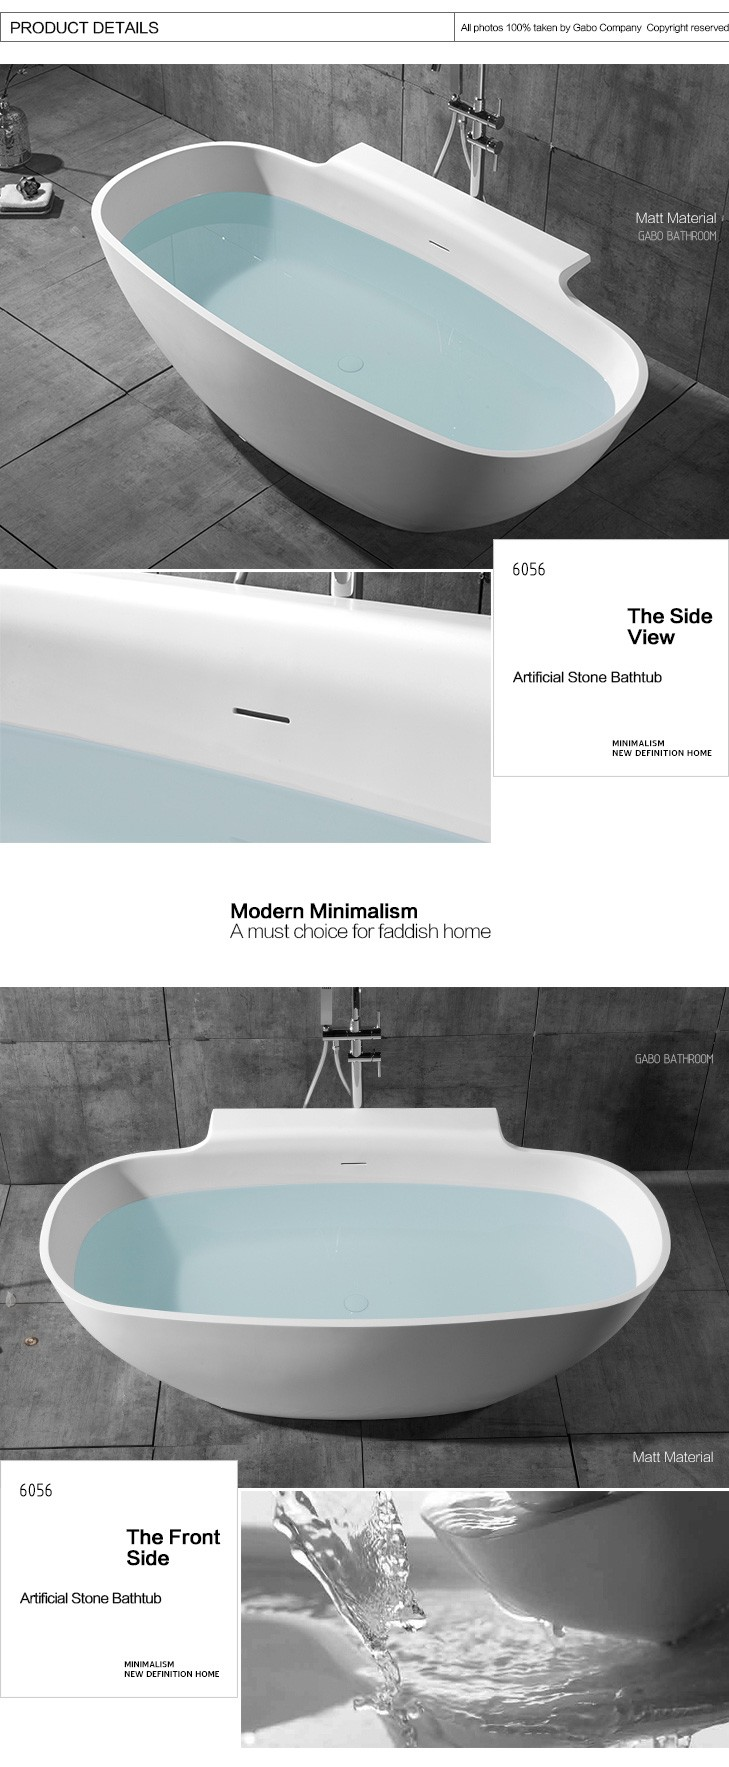 Man-made stone bath tub with prices